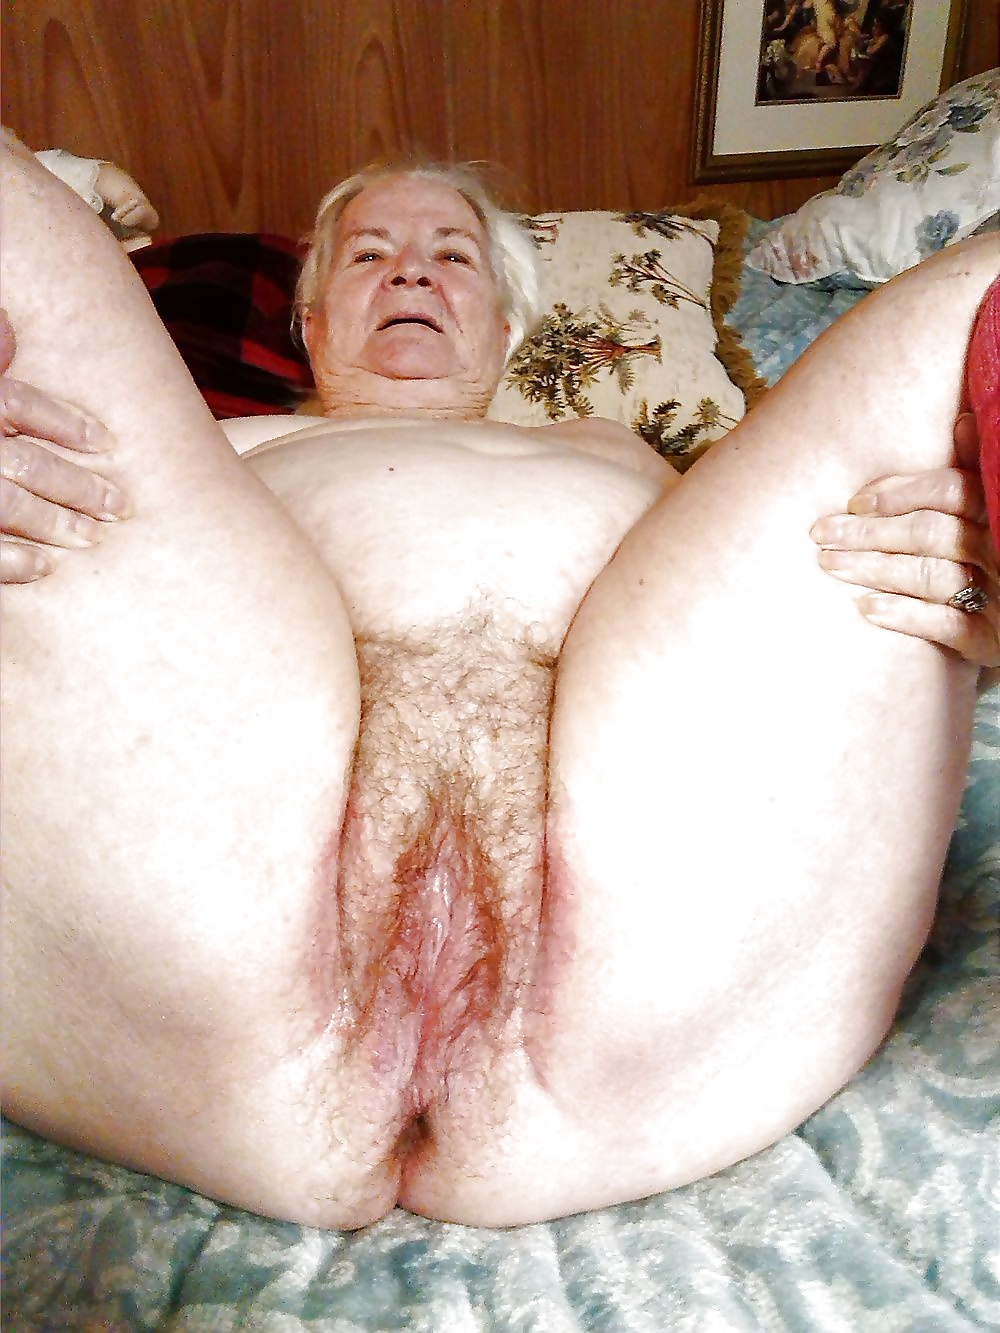 Wide Hips Granny With Regard To Granny Pics Gallery Granny Sexy Aged Shows Big